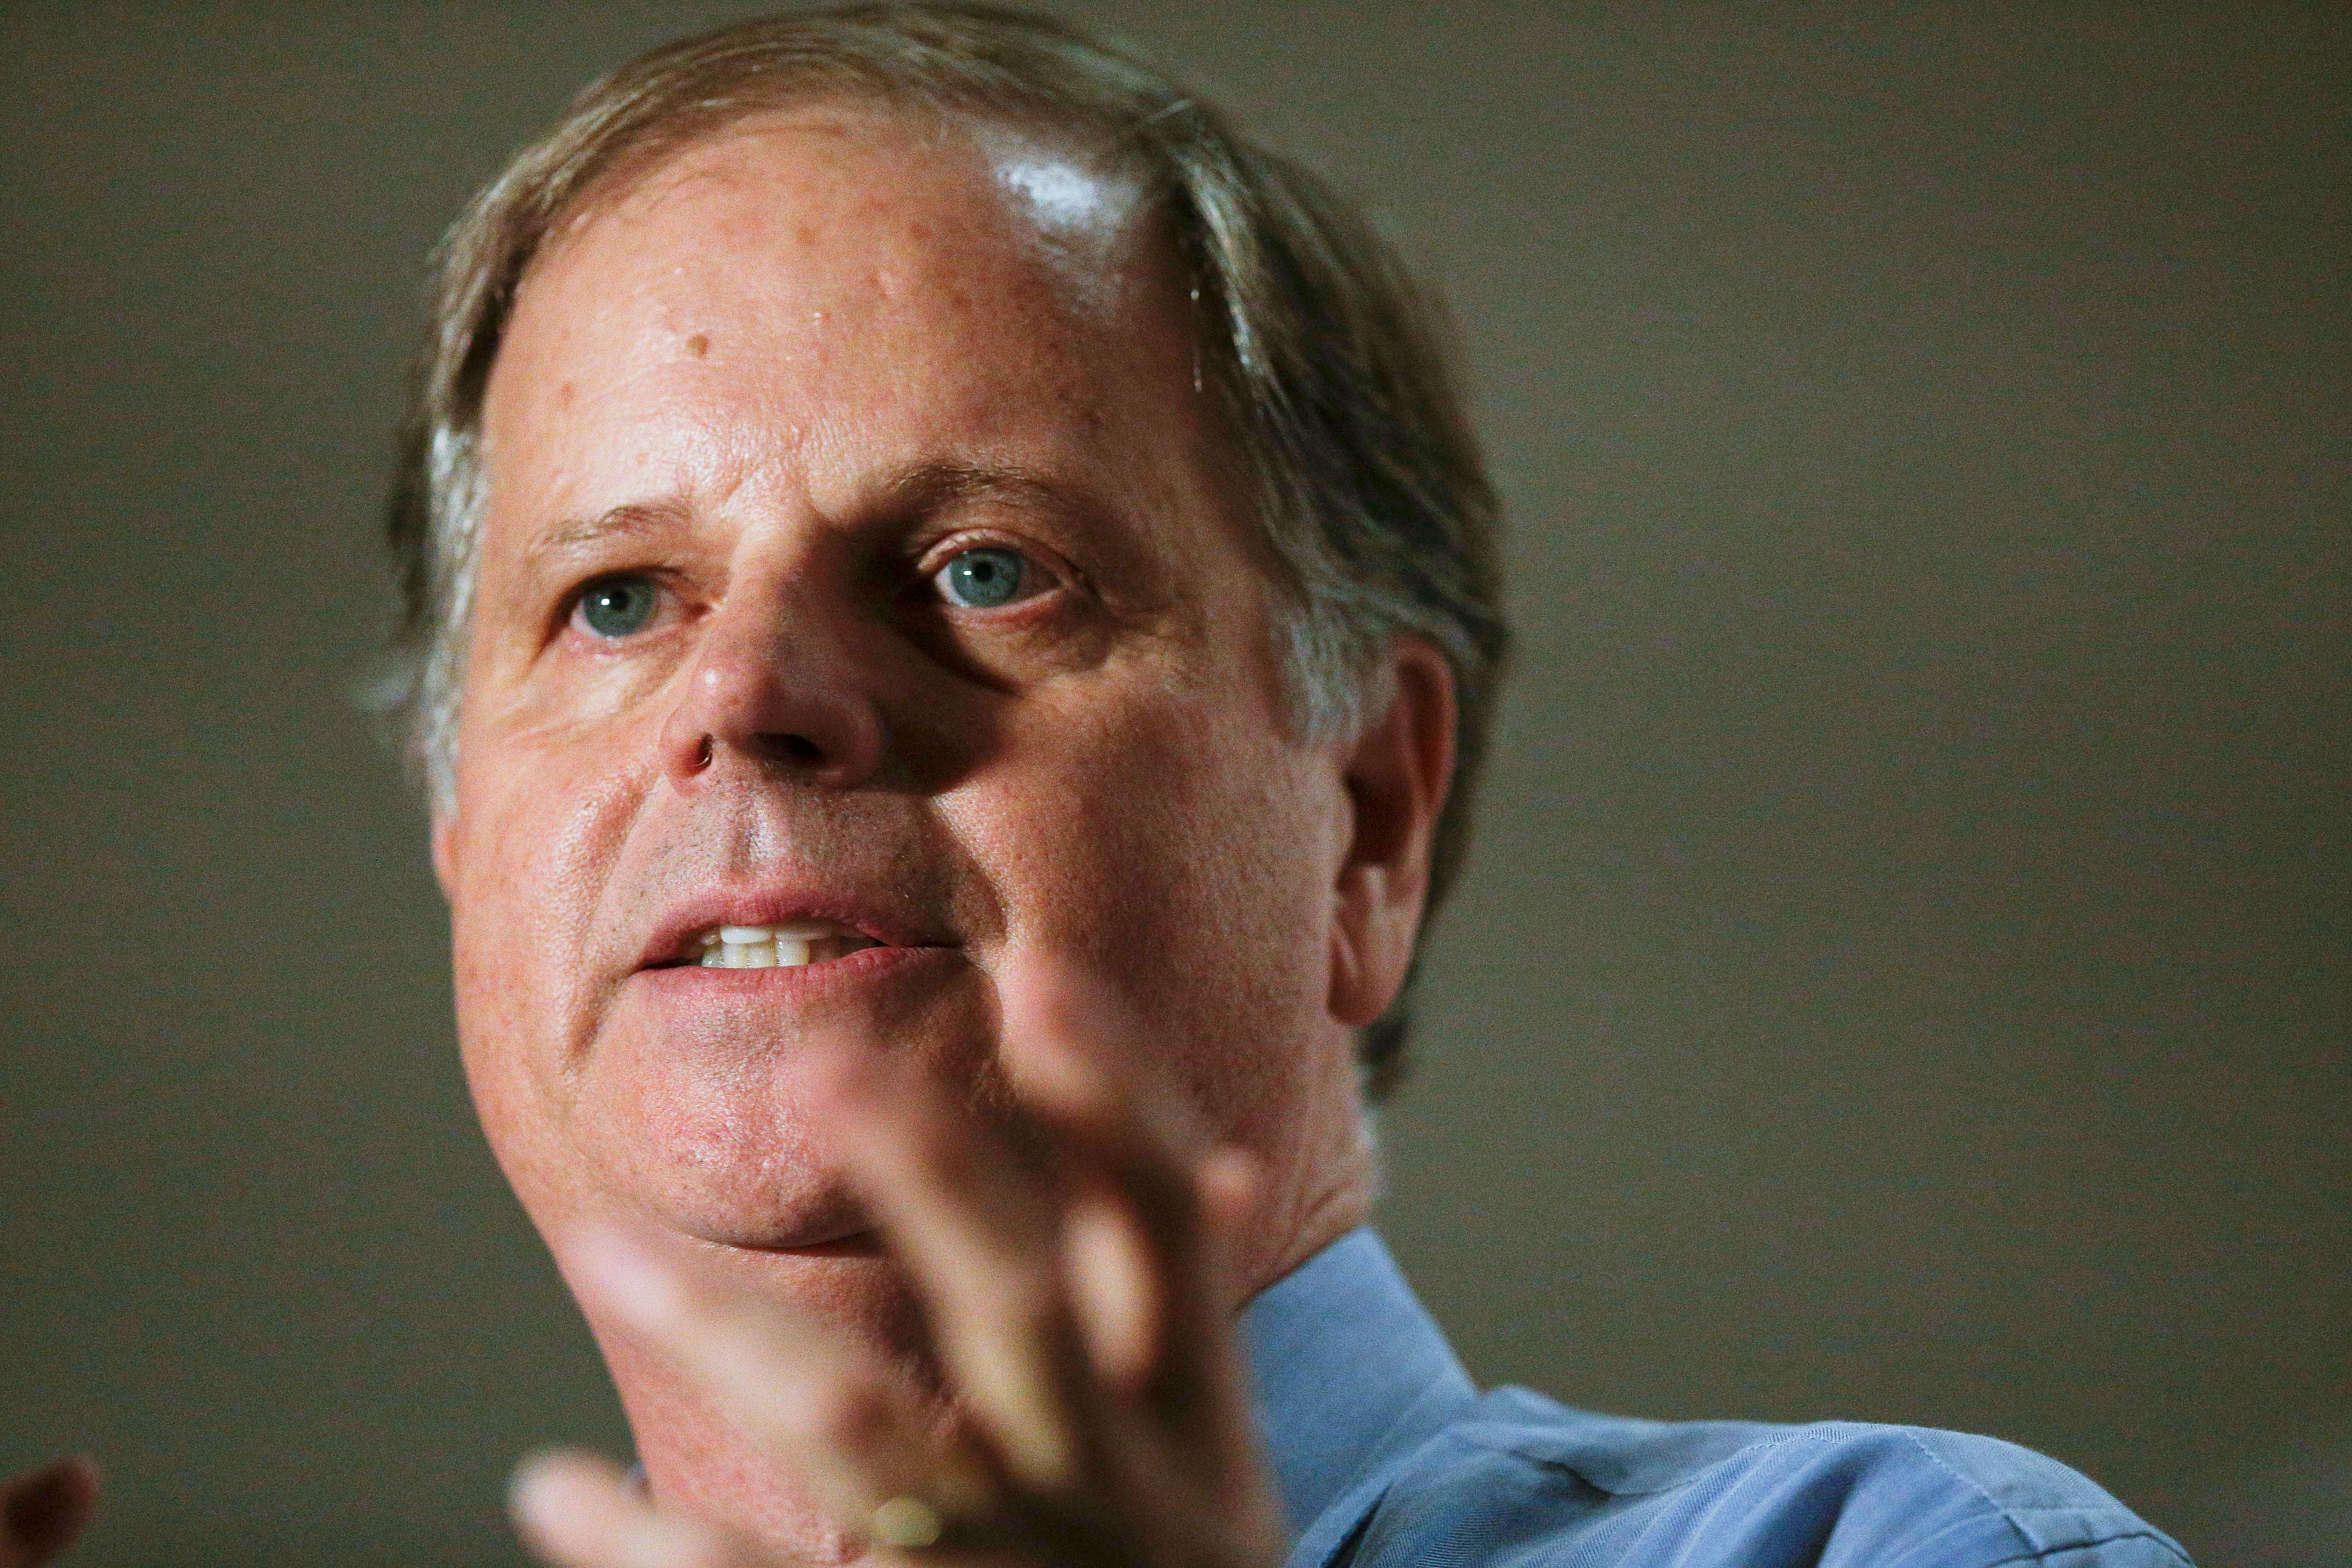 FILE - In this Tuesday, Oct. 3, 2017, file photo, Democrat Doug Jones speaks at a campaign rally for the race to fill Attorney General Jeff Sessions' former Senate seat, in Birmingham, Ala. President Donald Trump in tweets Sunday, Nov. 26, is again coming to the side of Republican Roy Moore by bashing Jones in the Alabama Senate race. (AP Photo/Brynn Anderson, File)